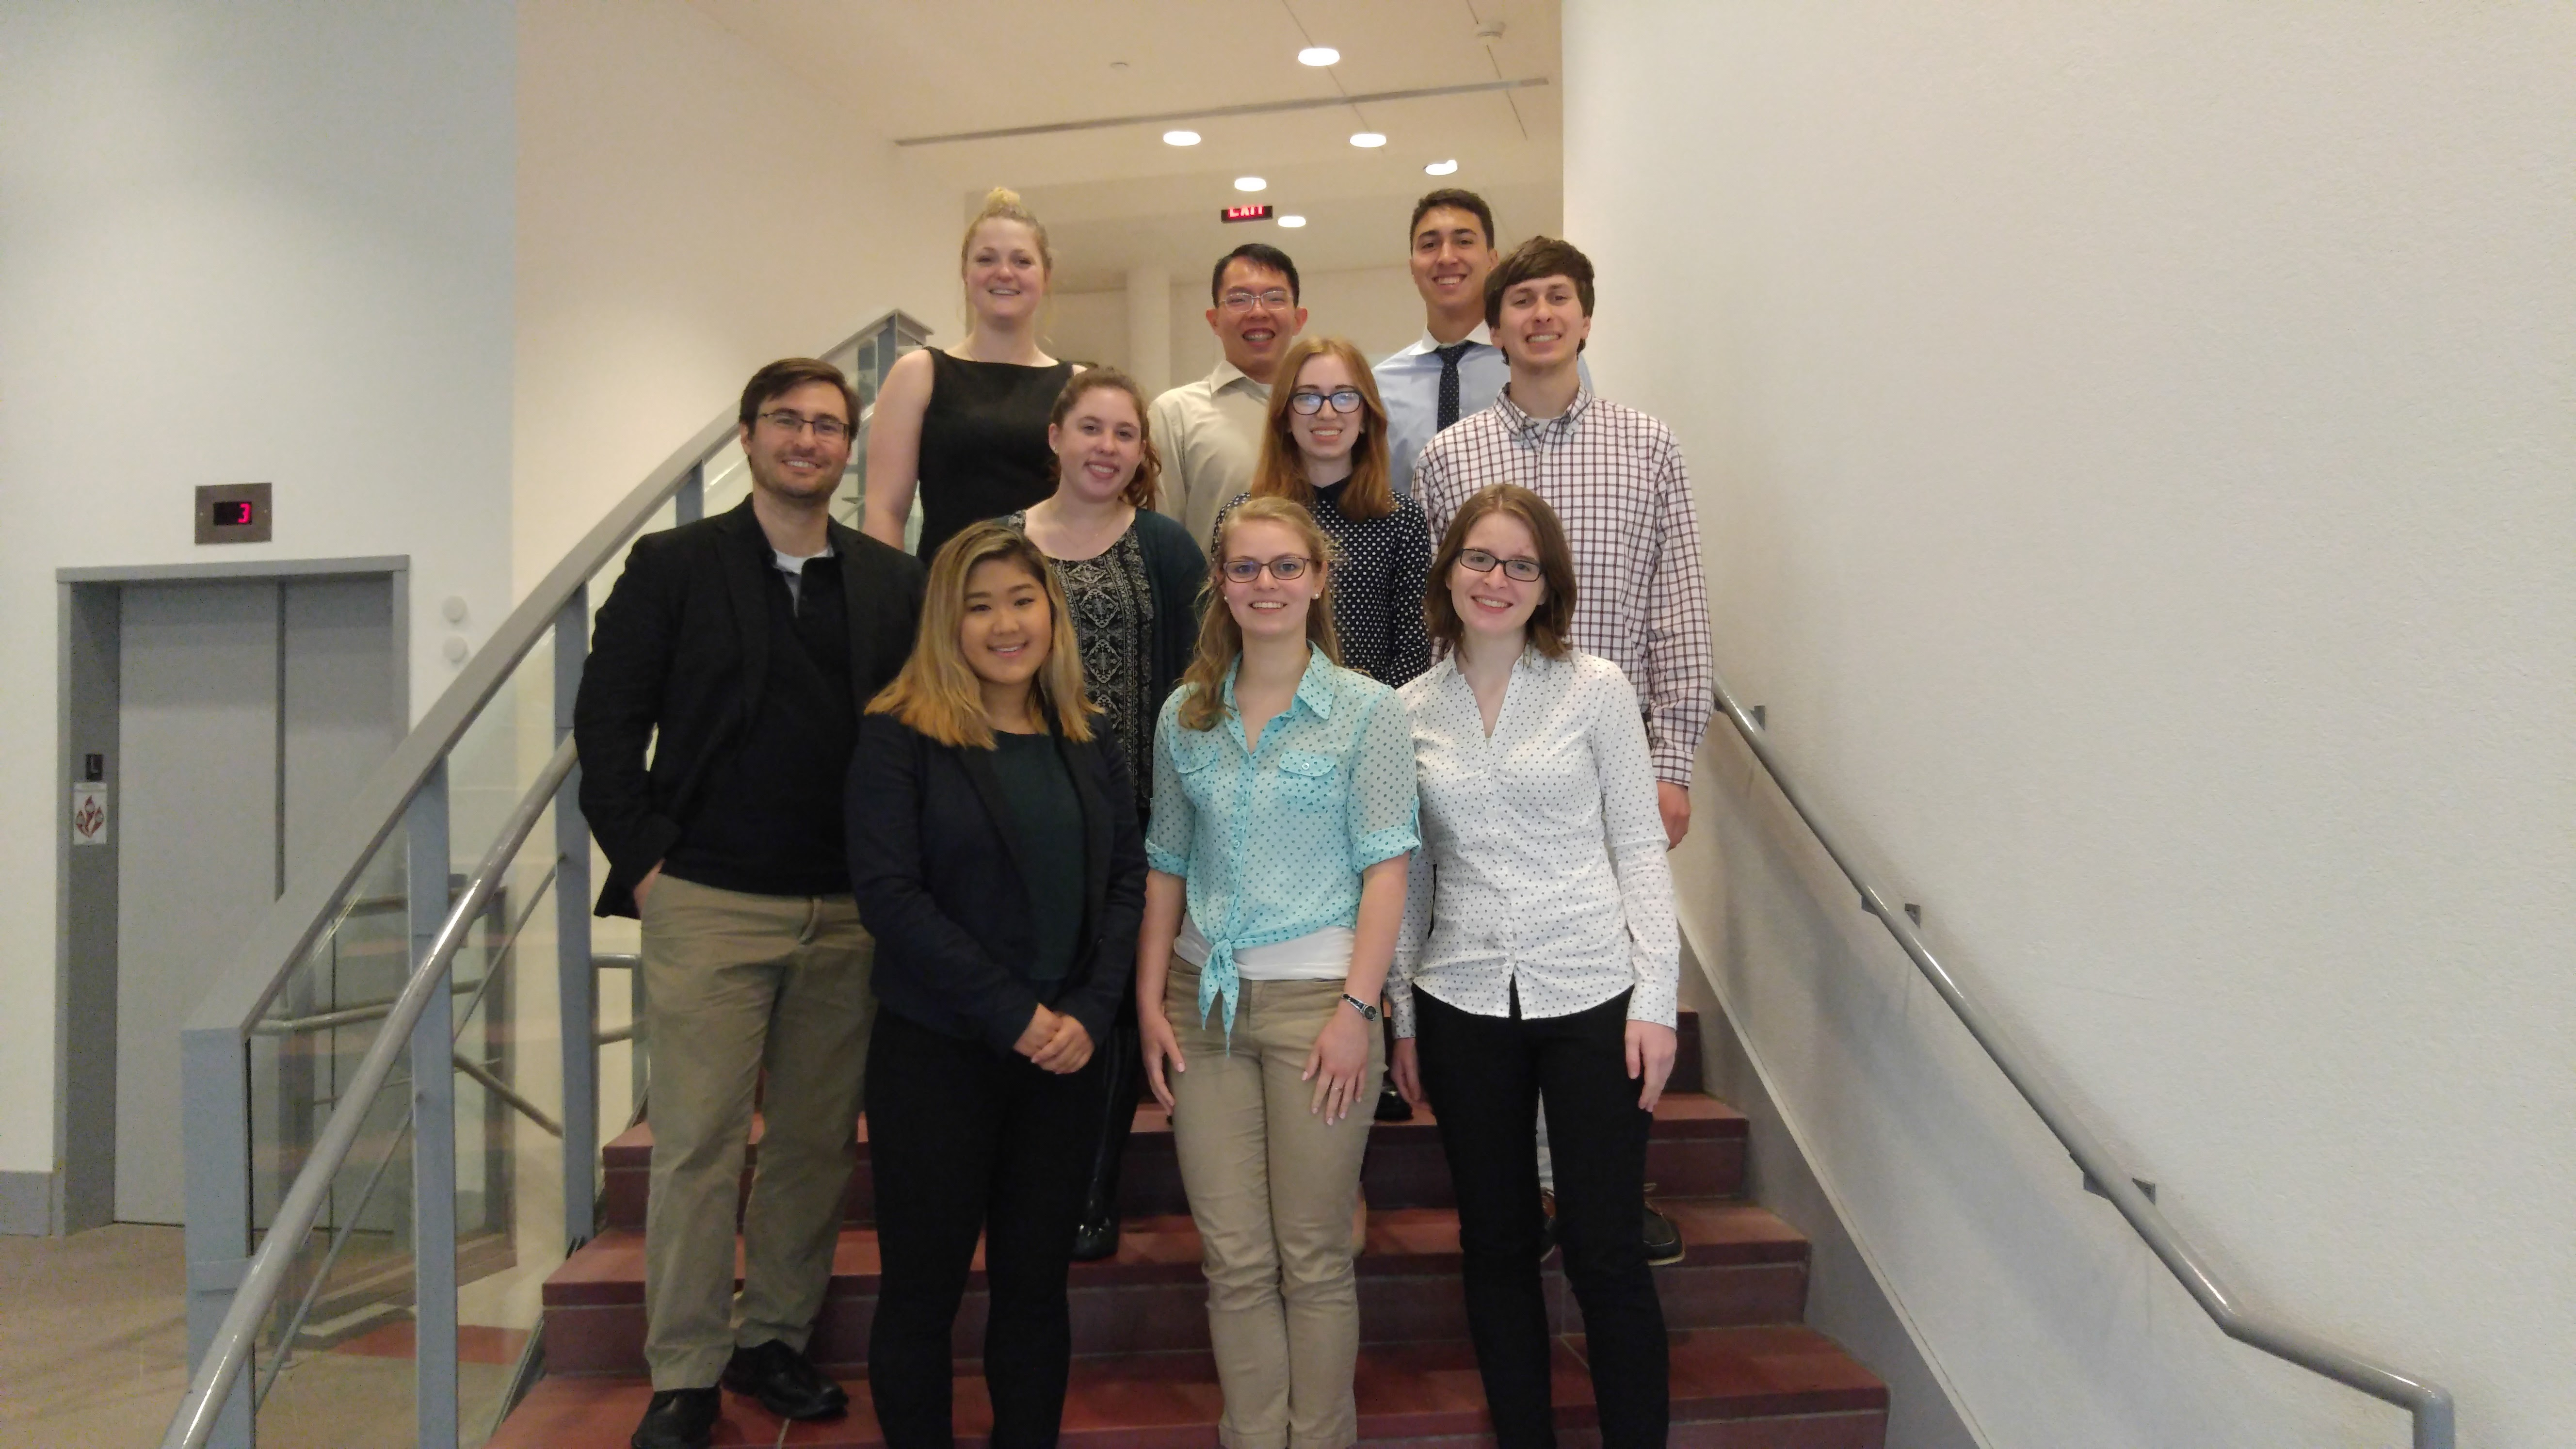 Professor Justin Hines (left) and his 2016-17 research students